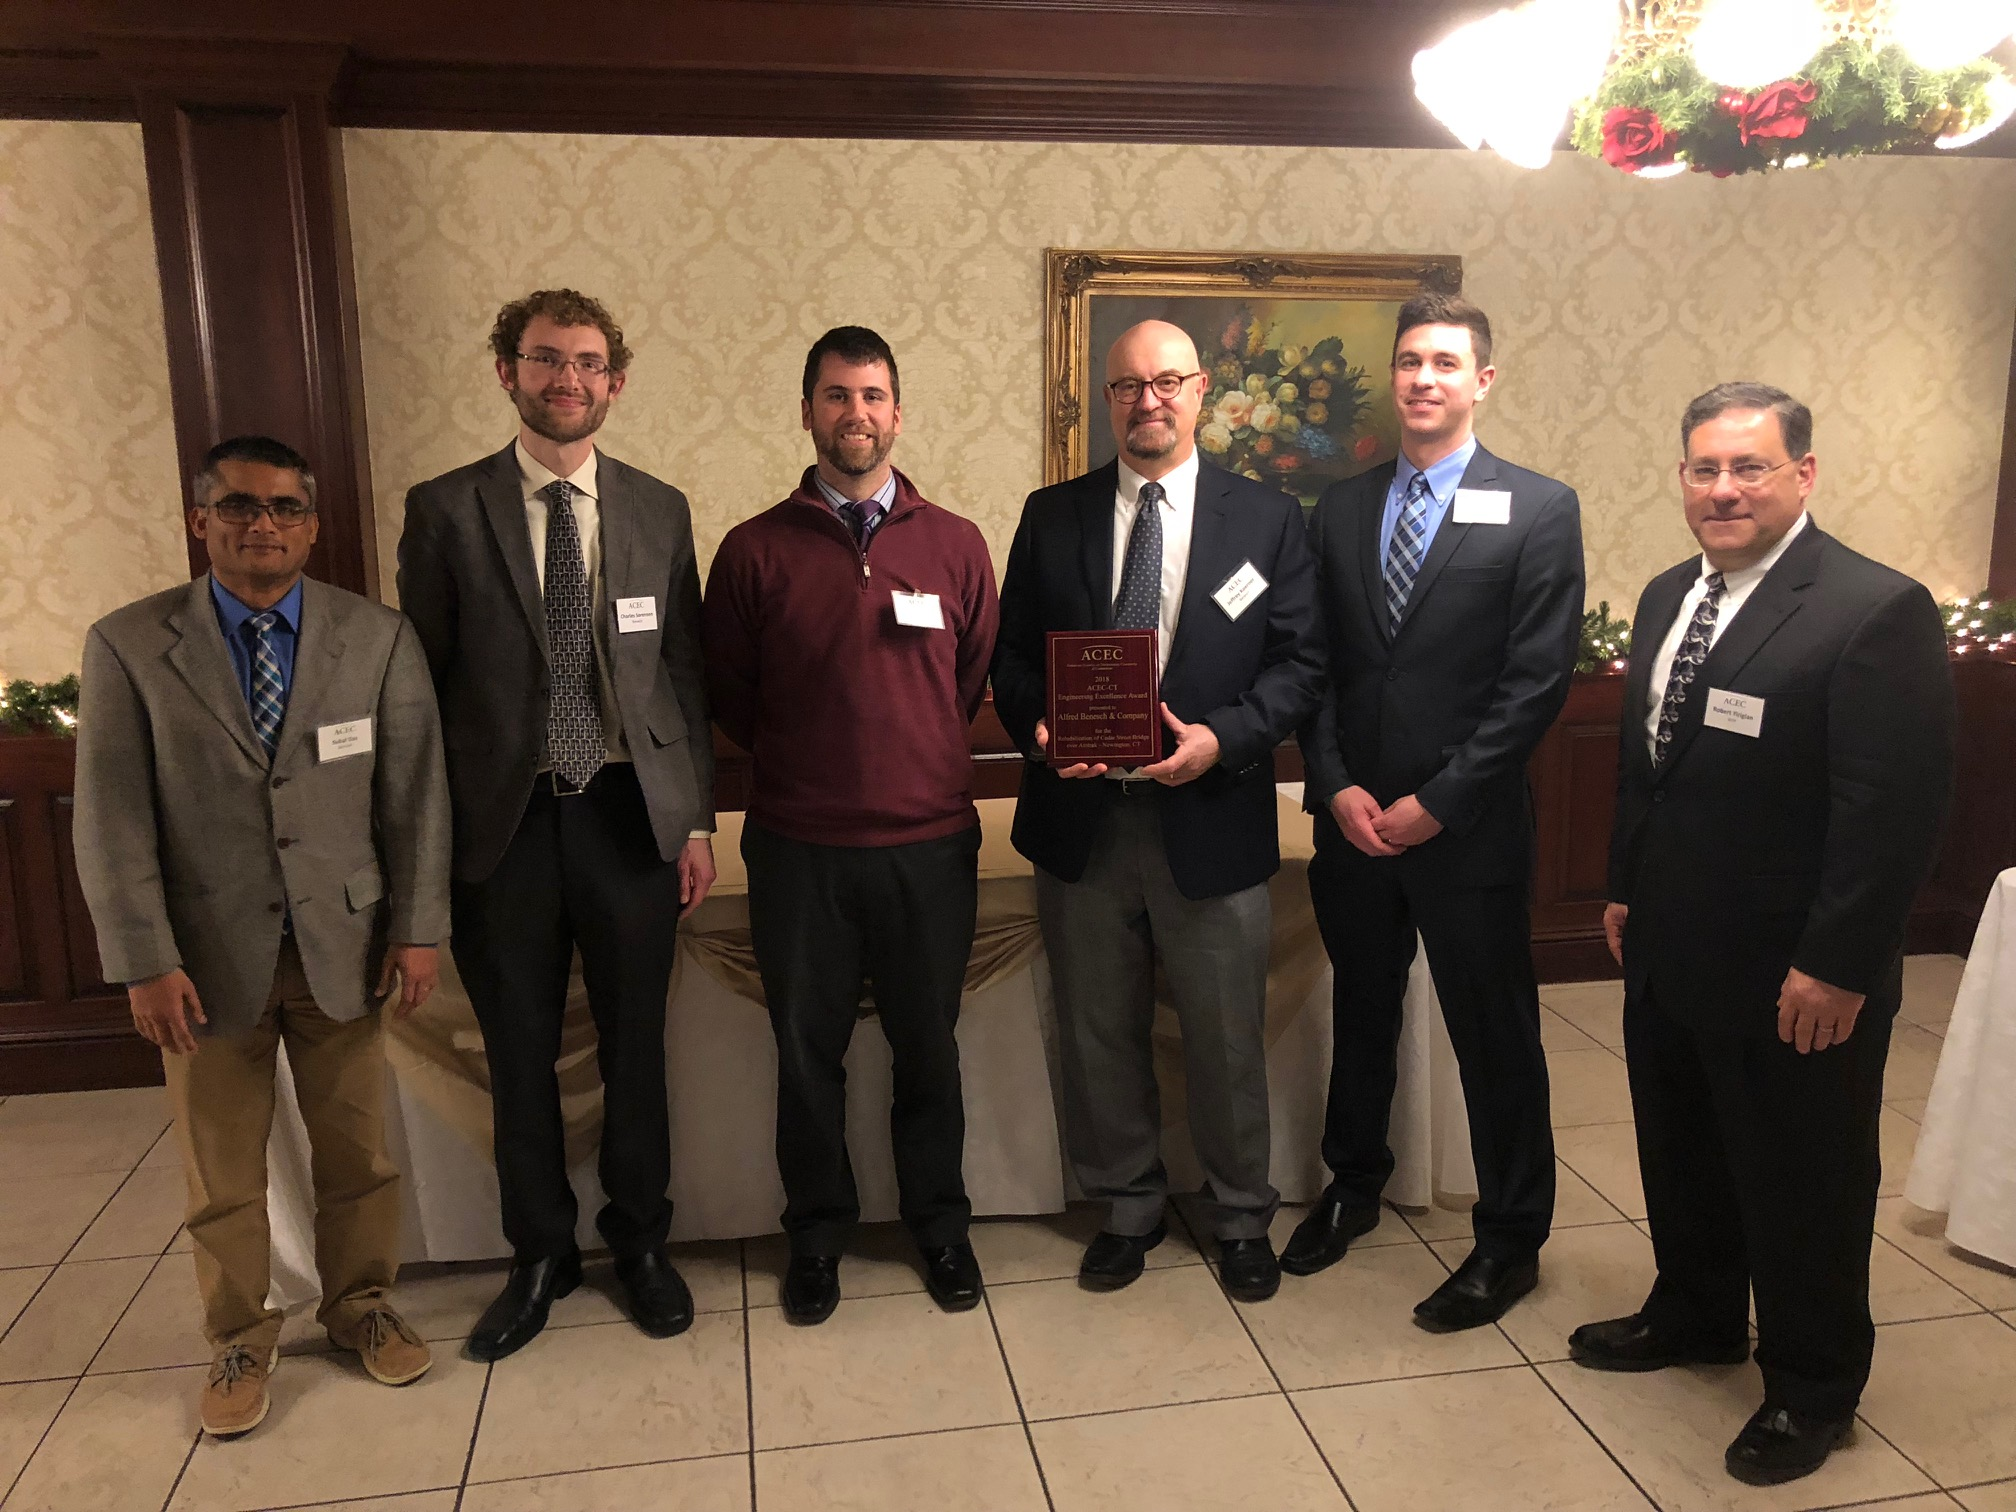 Alfred Benesch & Company 2018 ACEC/CT Engineering Excellence Award Winning Team